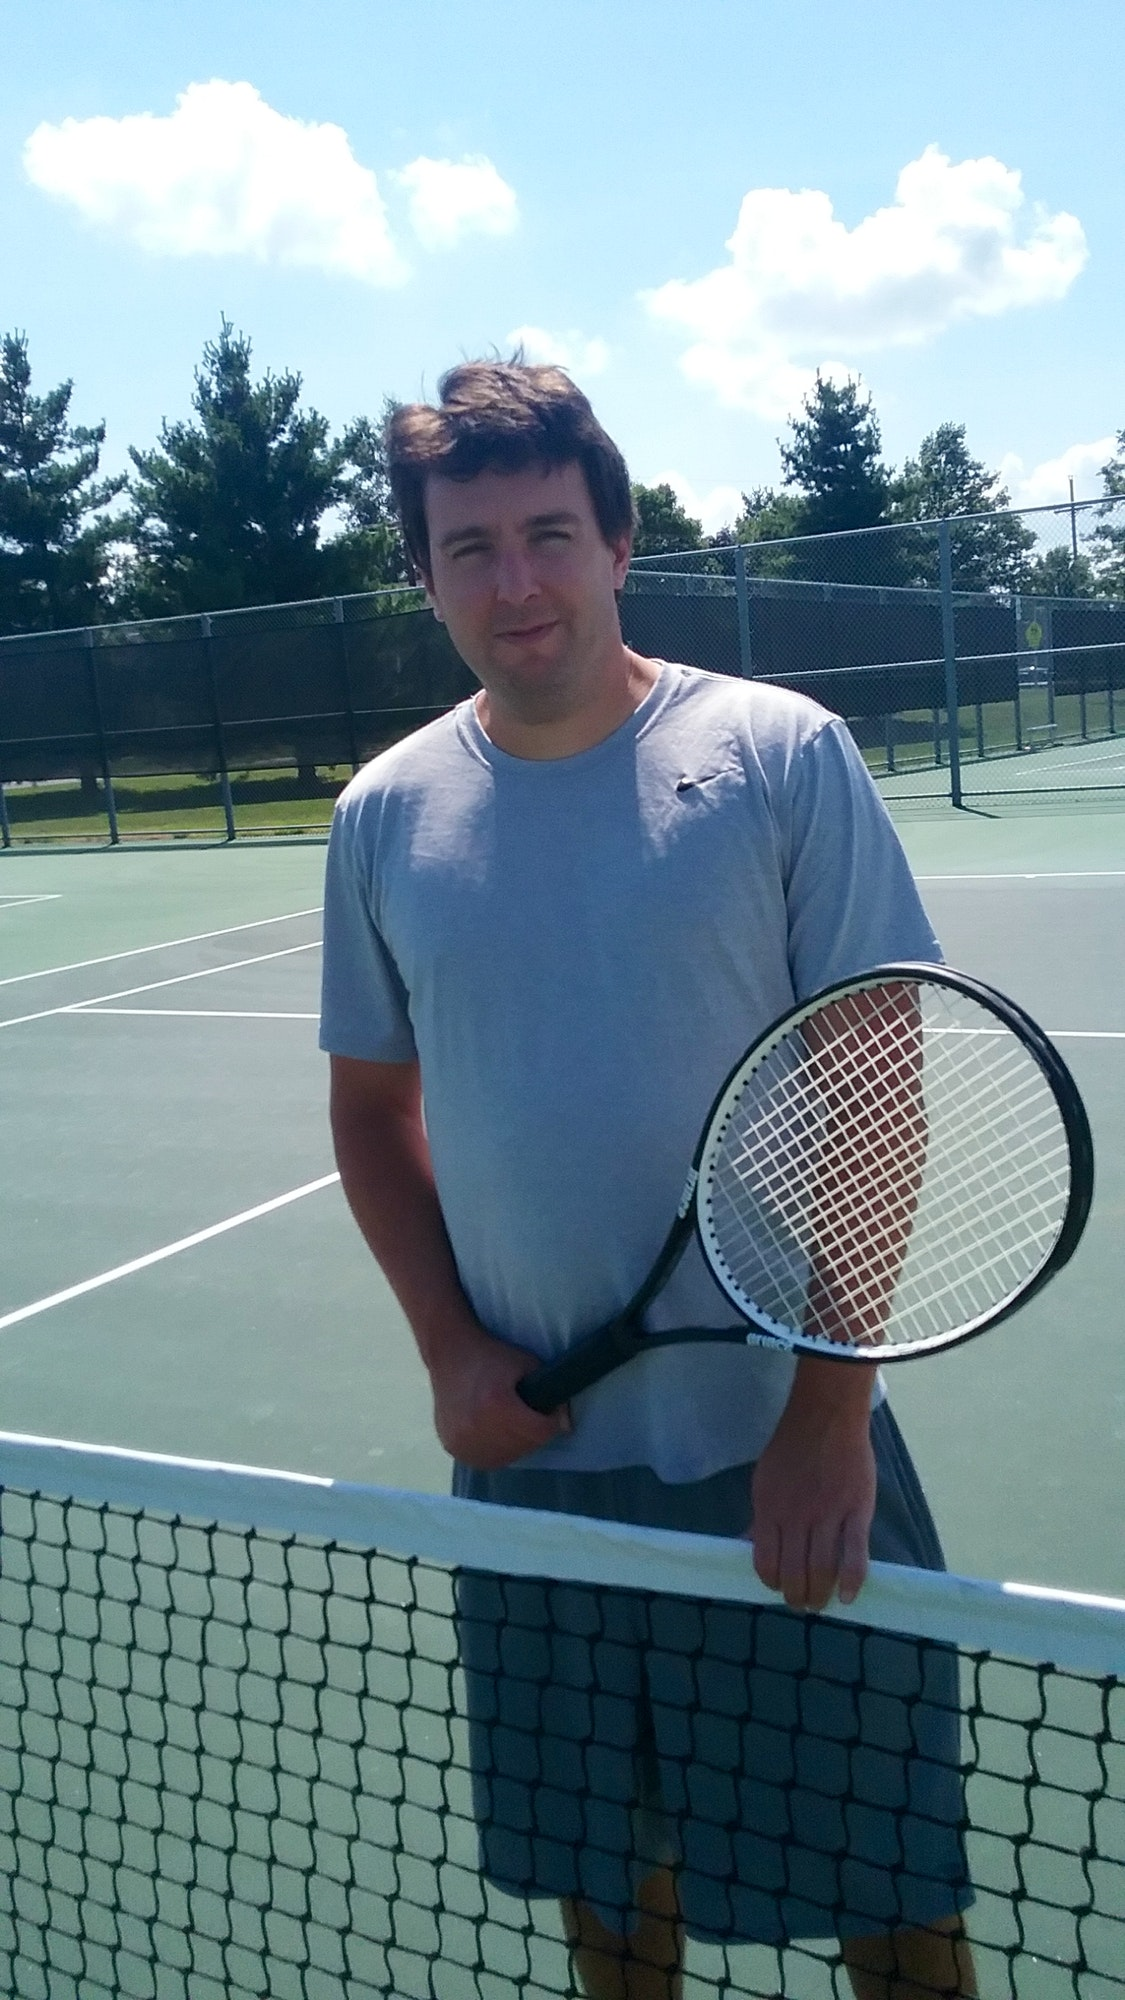 Andrew L. teaches tennis lessons in Kansas City, KS